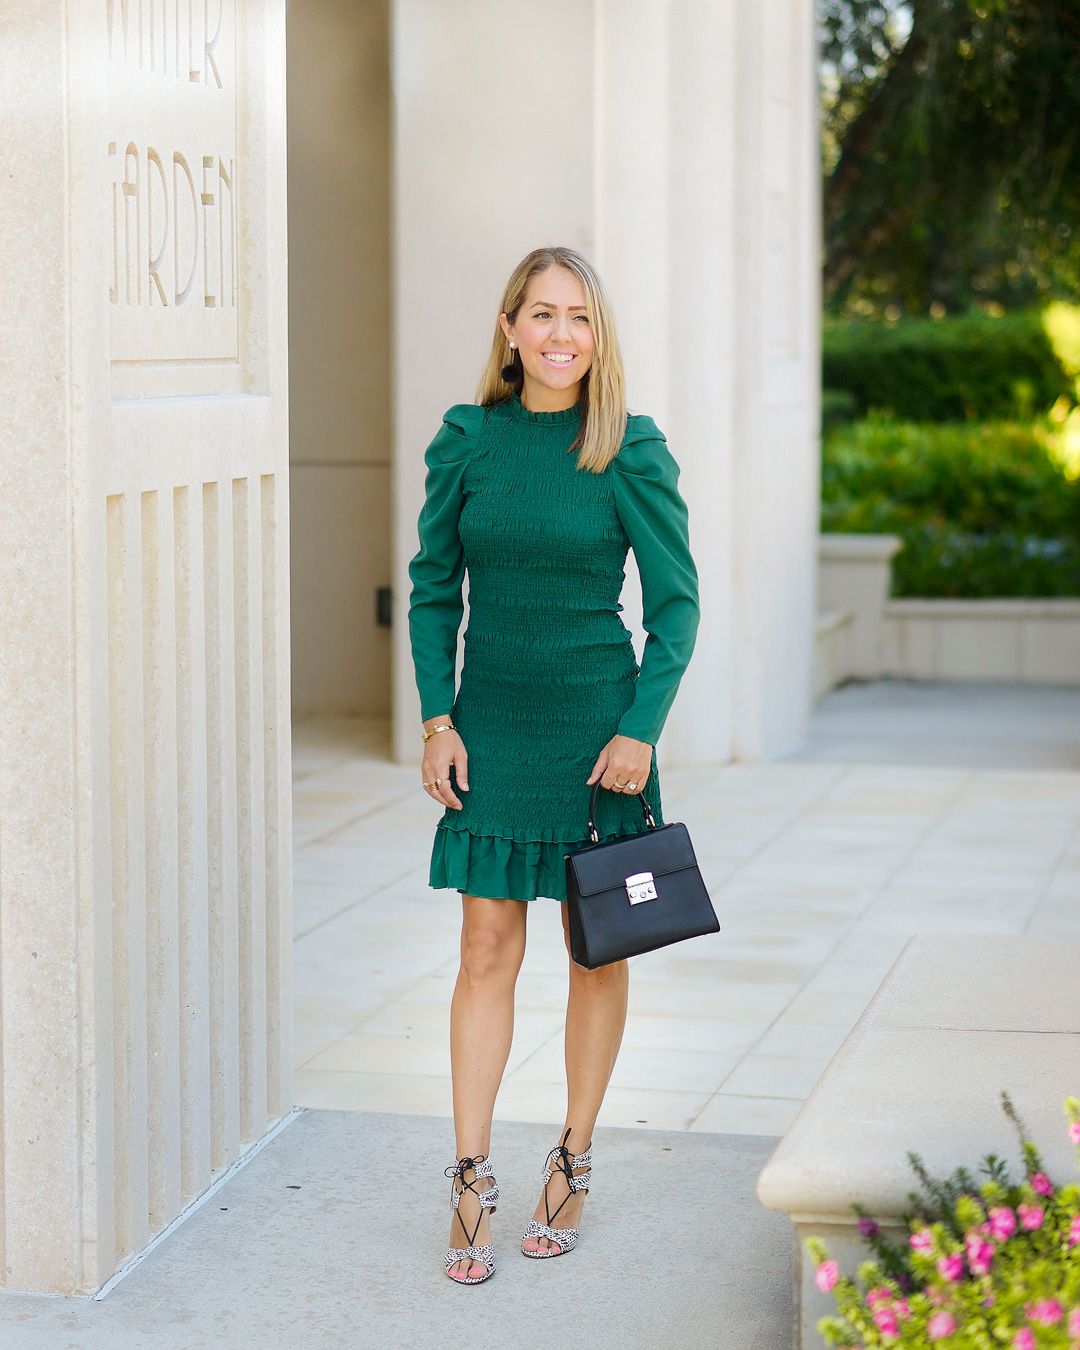 green-dress-1-copy.jpg